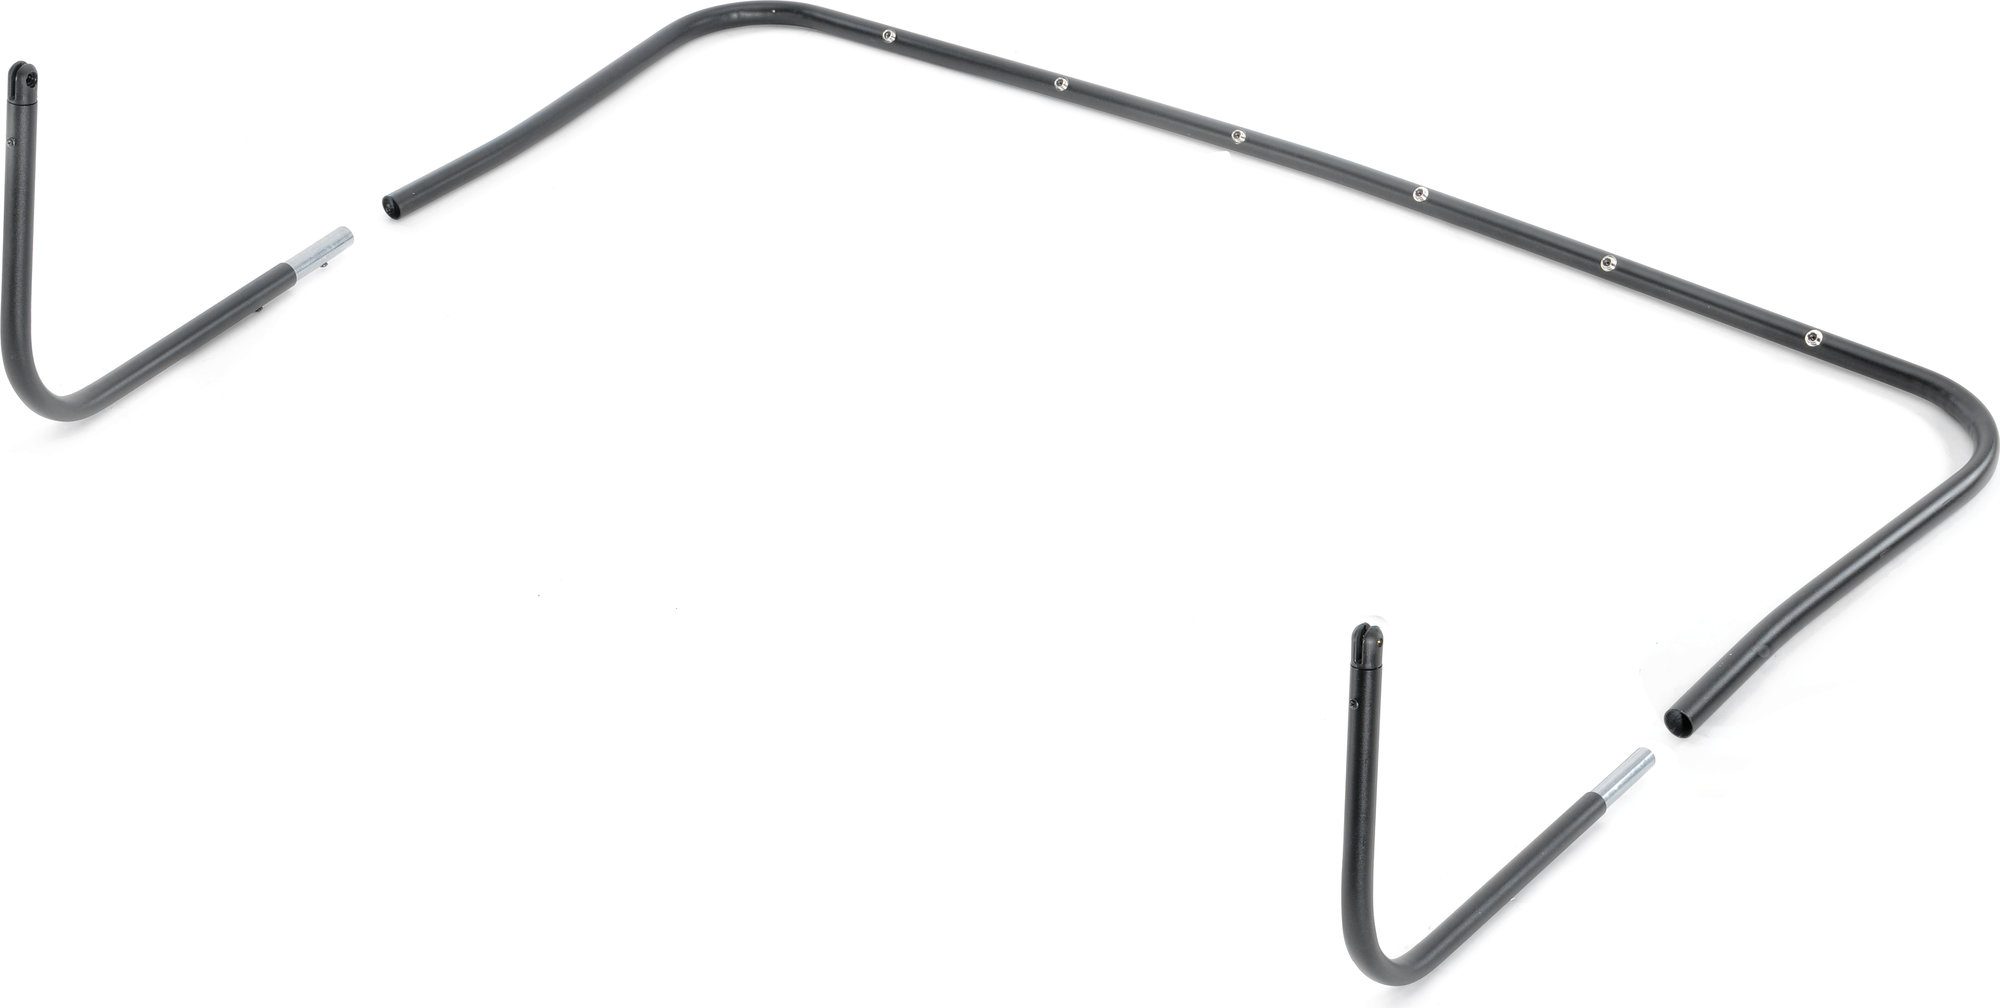 Mopar® 55176442AF 3rd Folding Bow Assembly with Pivot for